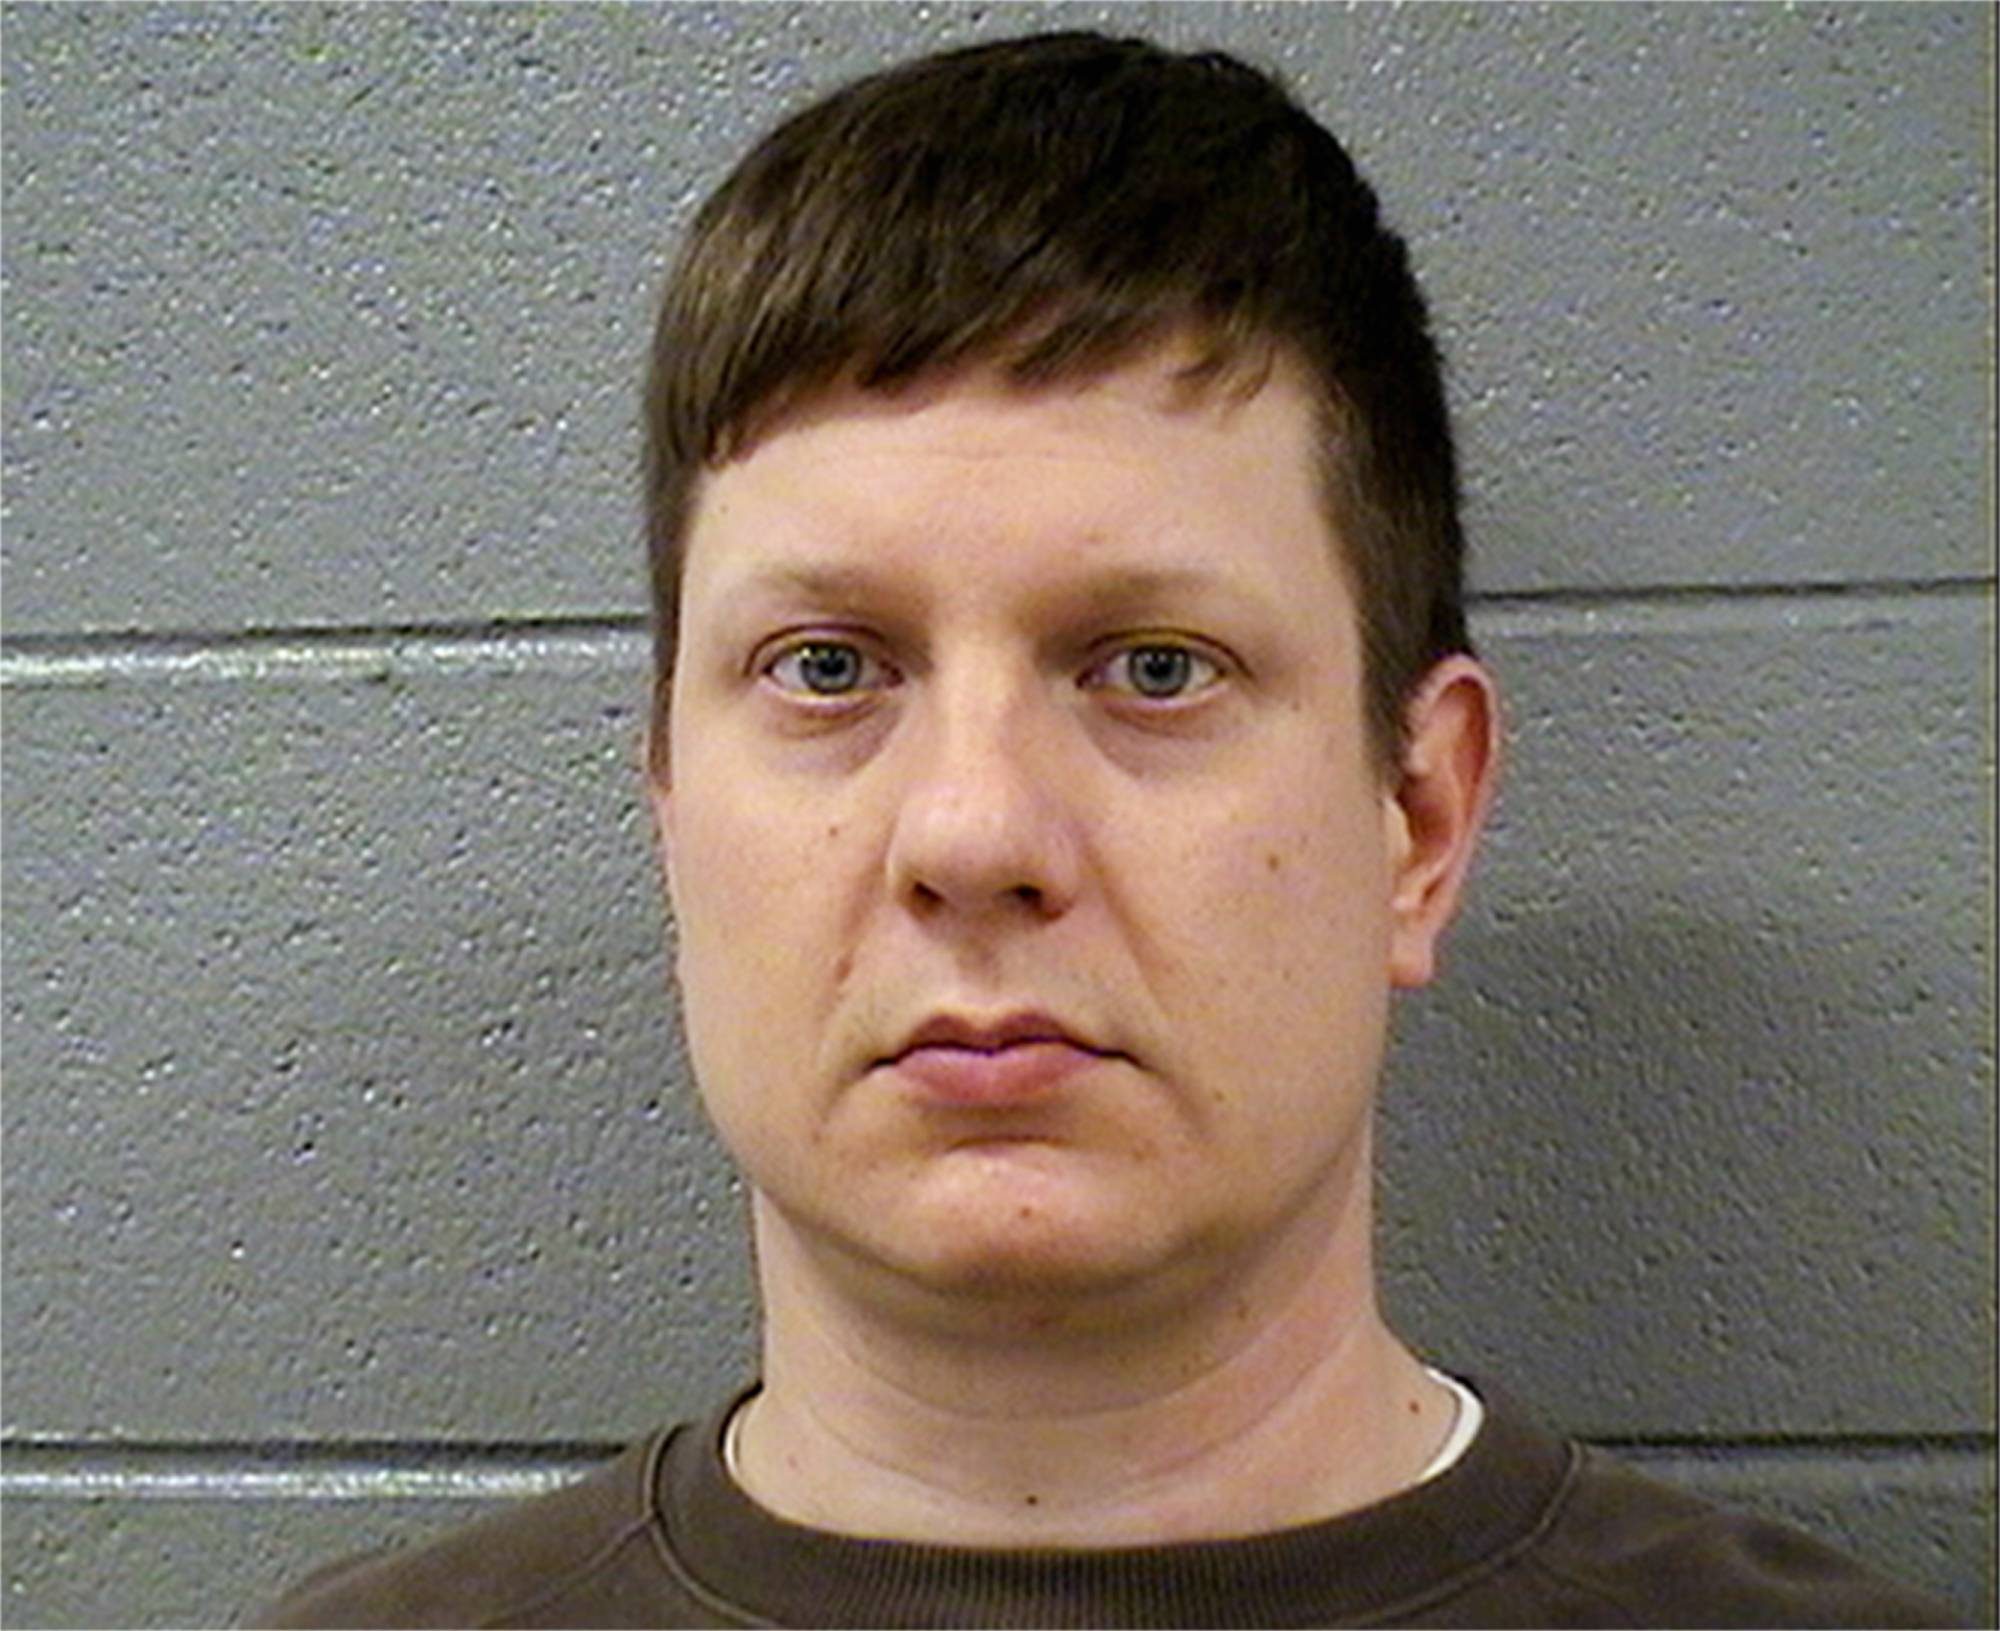 Chicago police Officer Jason Van Dyke, who was charged with first degree murder after a squad car video caught him fatally shooting 17-year-old Laquan McDonald 16 times. Van Dyke is scheduled to return to court Monday, Nov. 30, 2015, to learn whether he'll be offered bond.